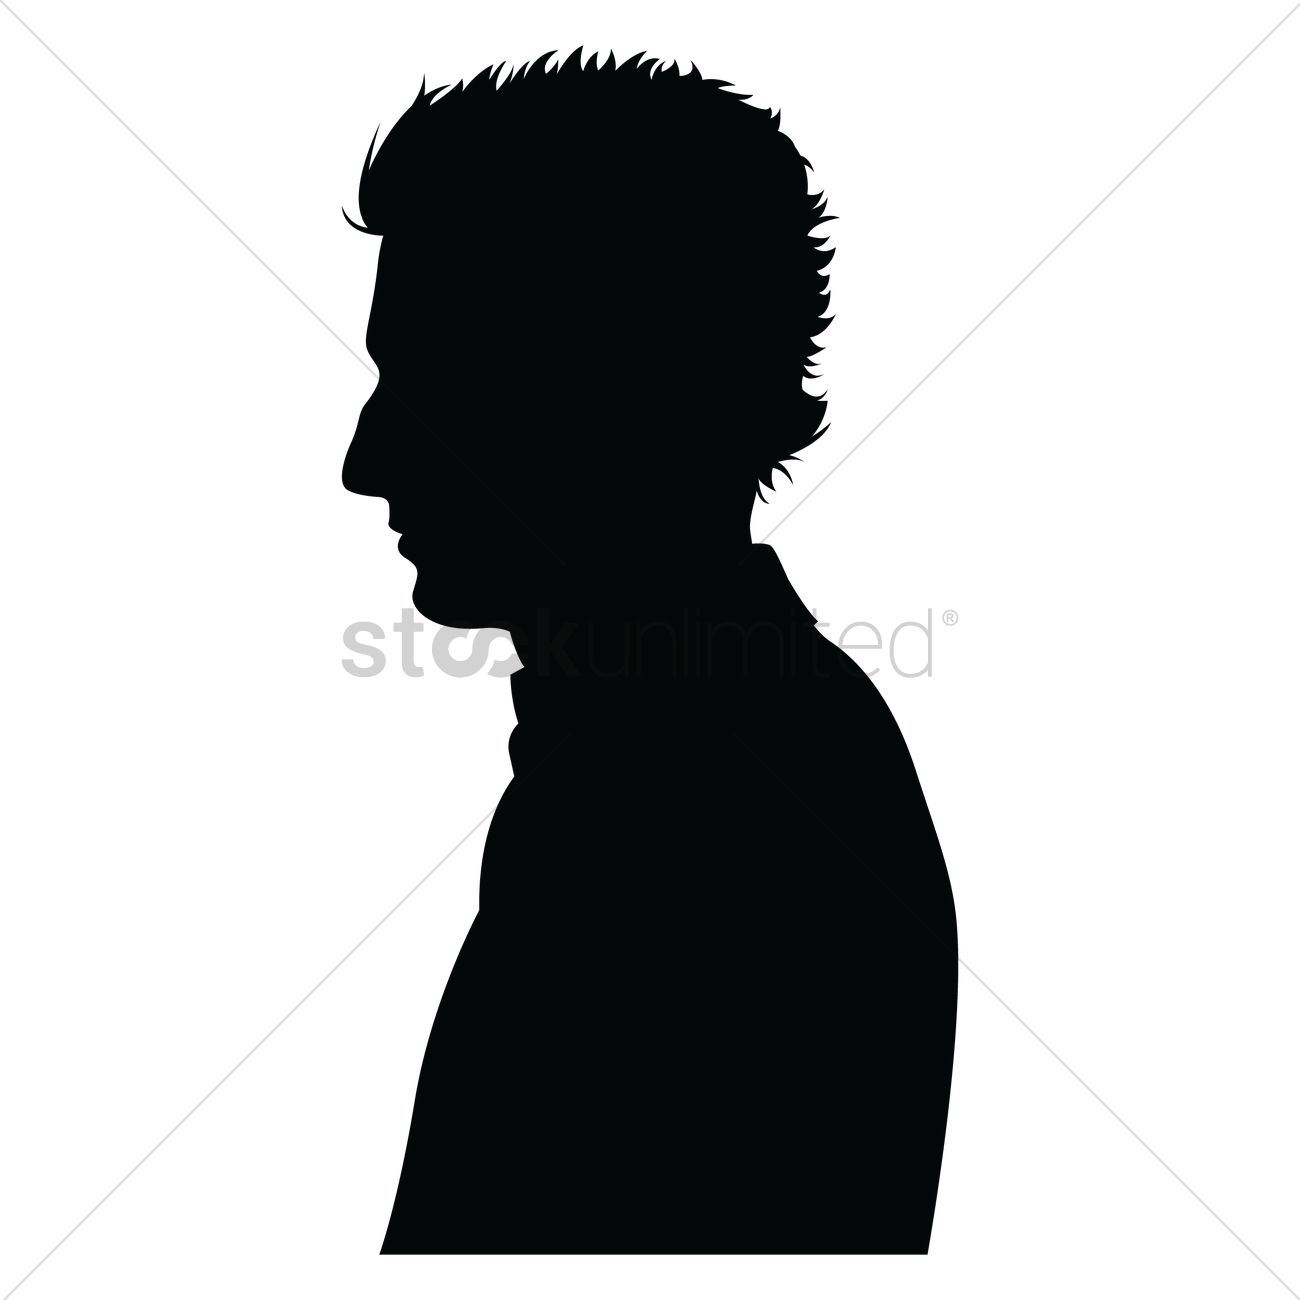 1300x1300 Side View Of A Silhouette Man Vector Image